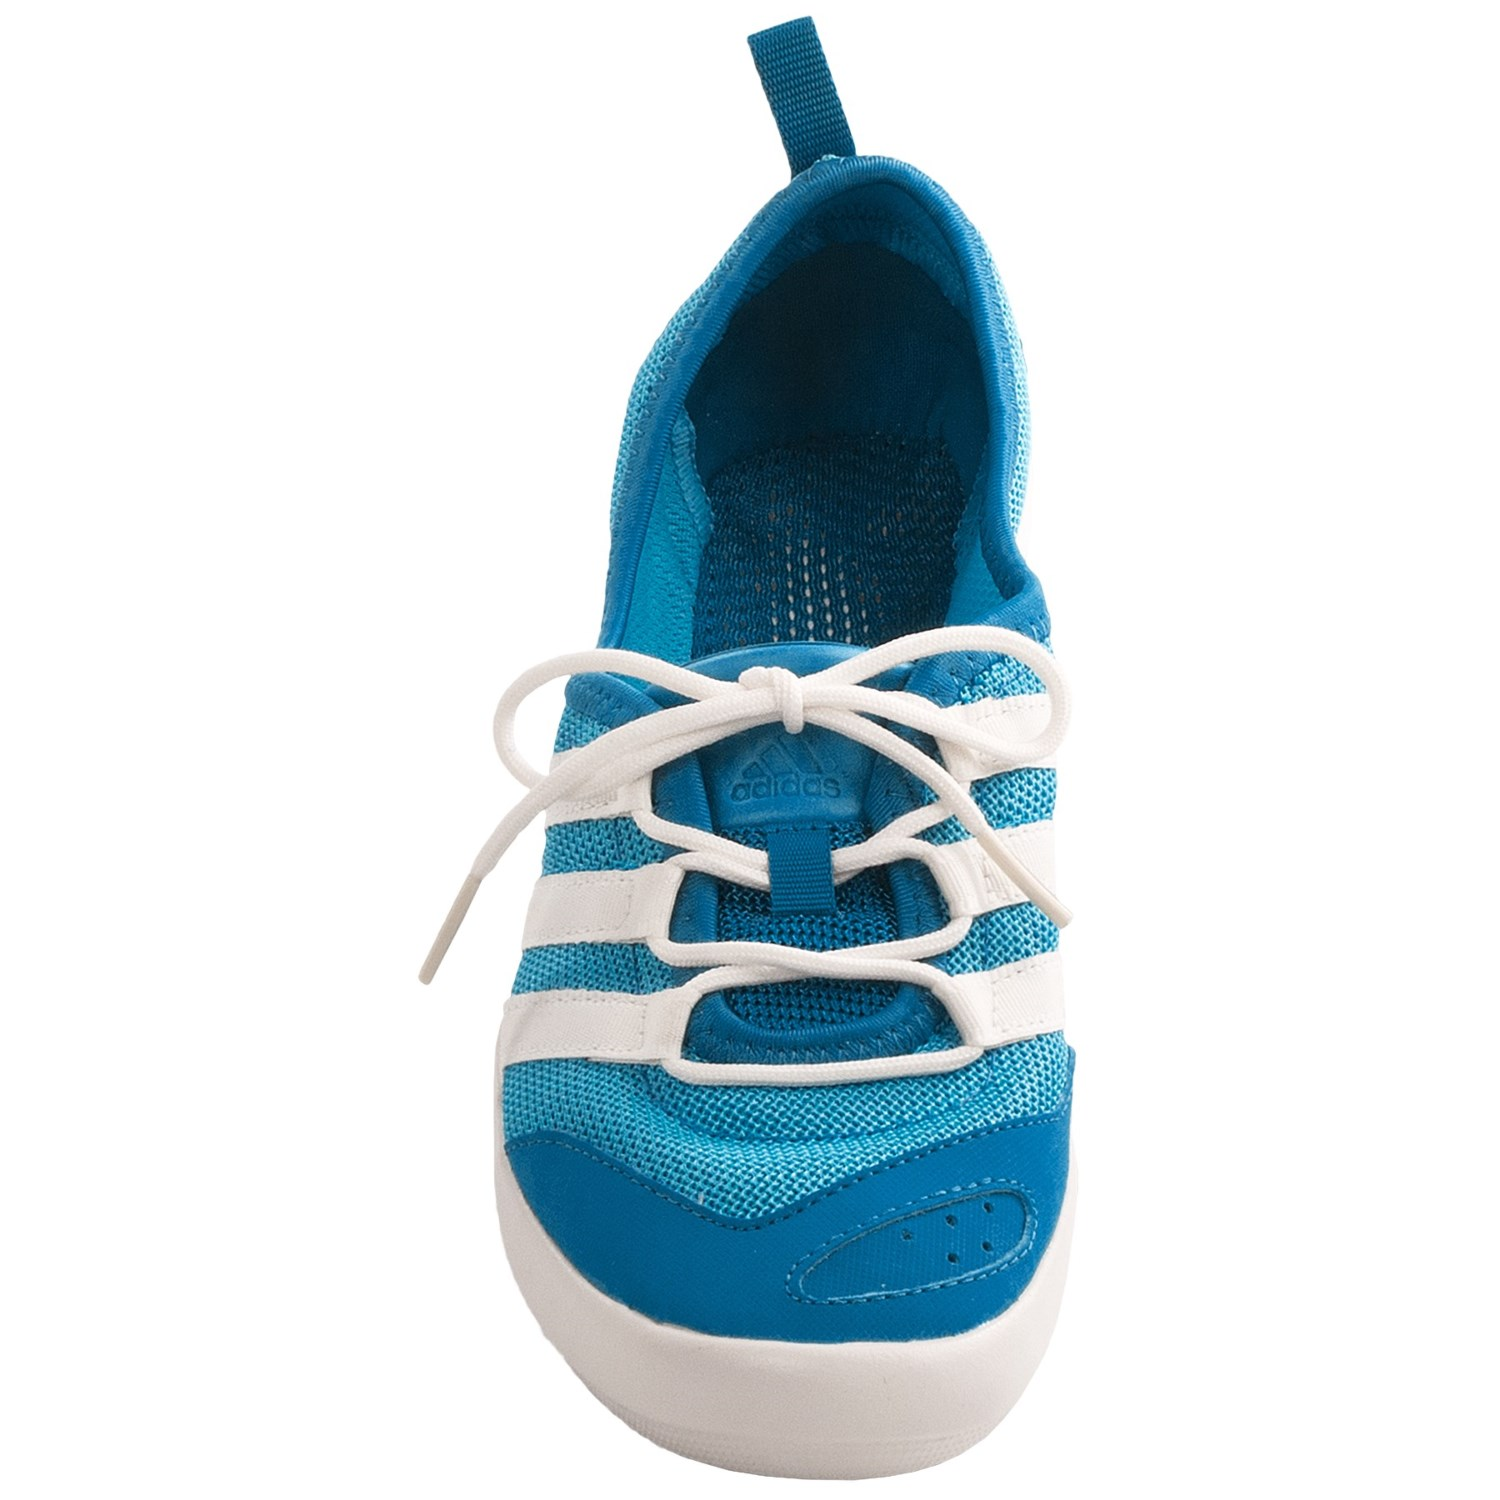 90f4145c554e adidas outdoor ClimaCool® Boat Sleek Water Shoes (For Women) - Save 41%